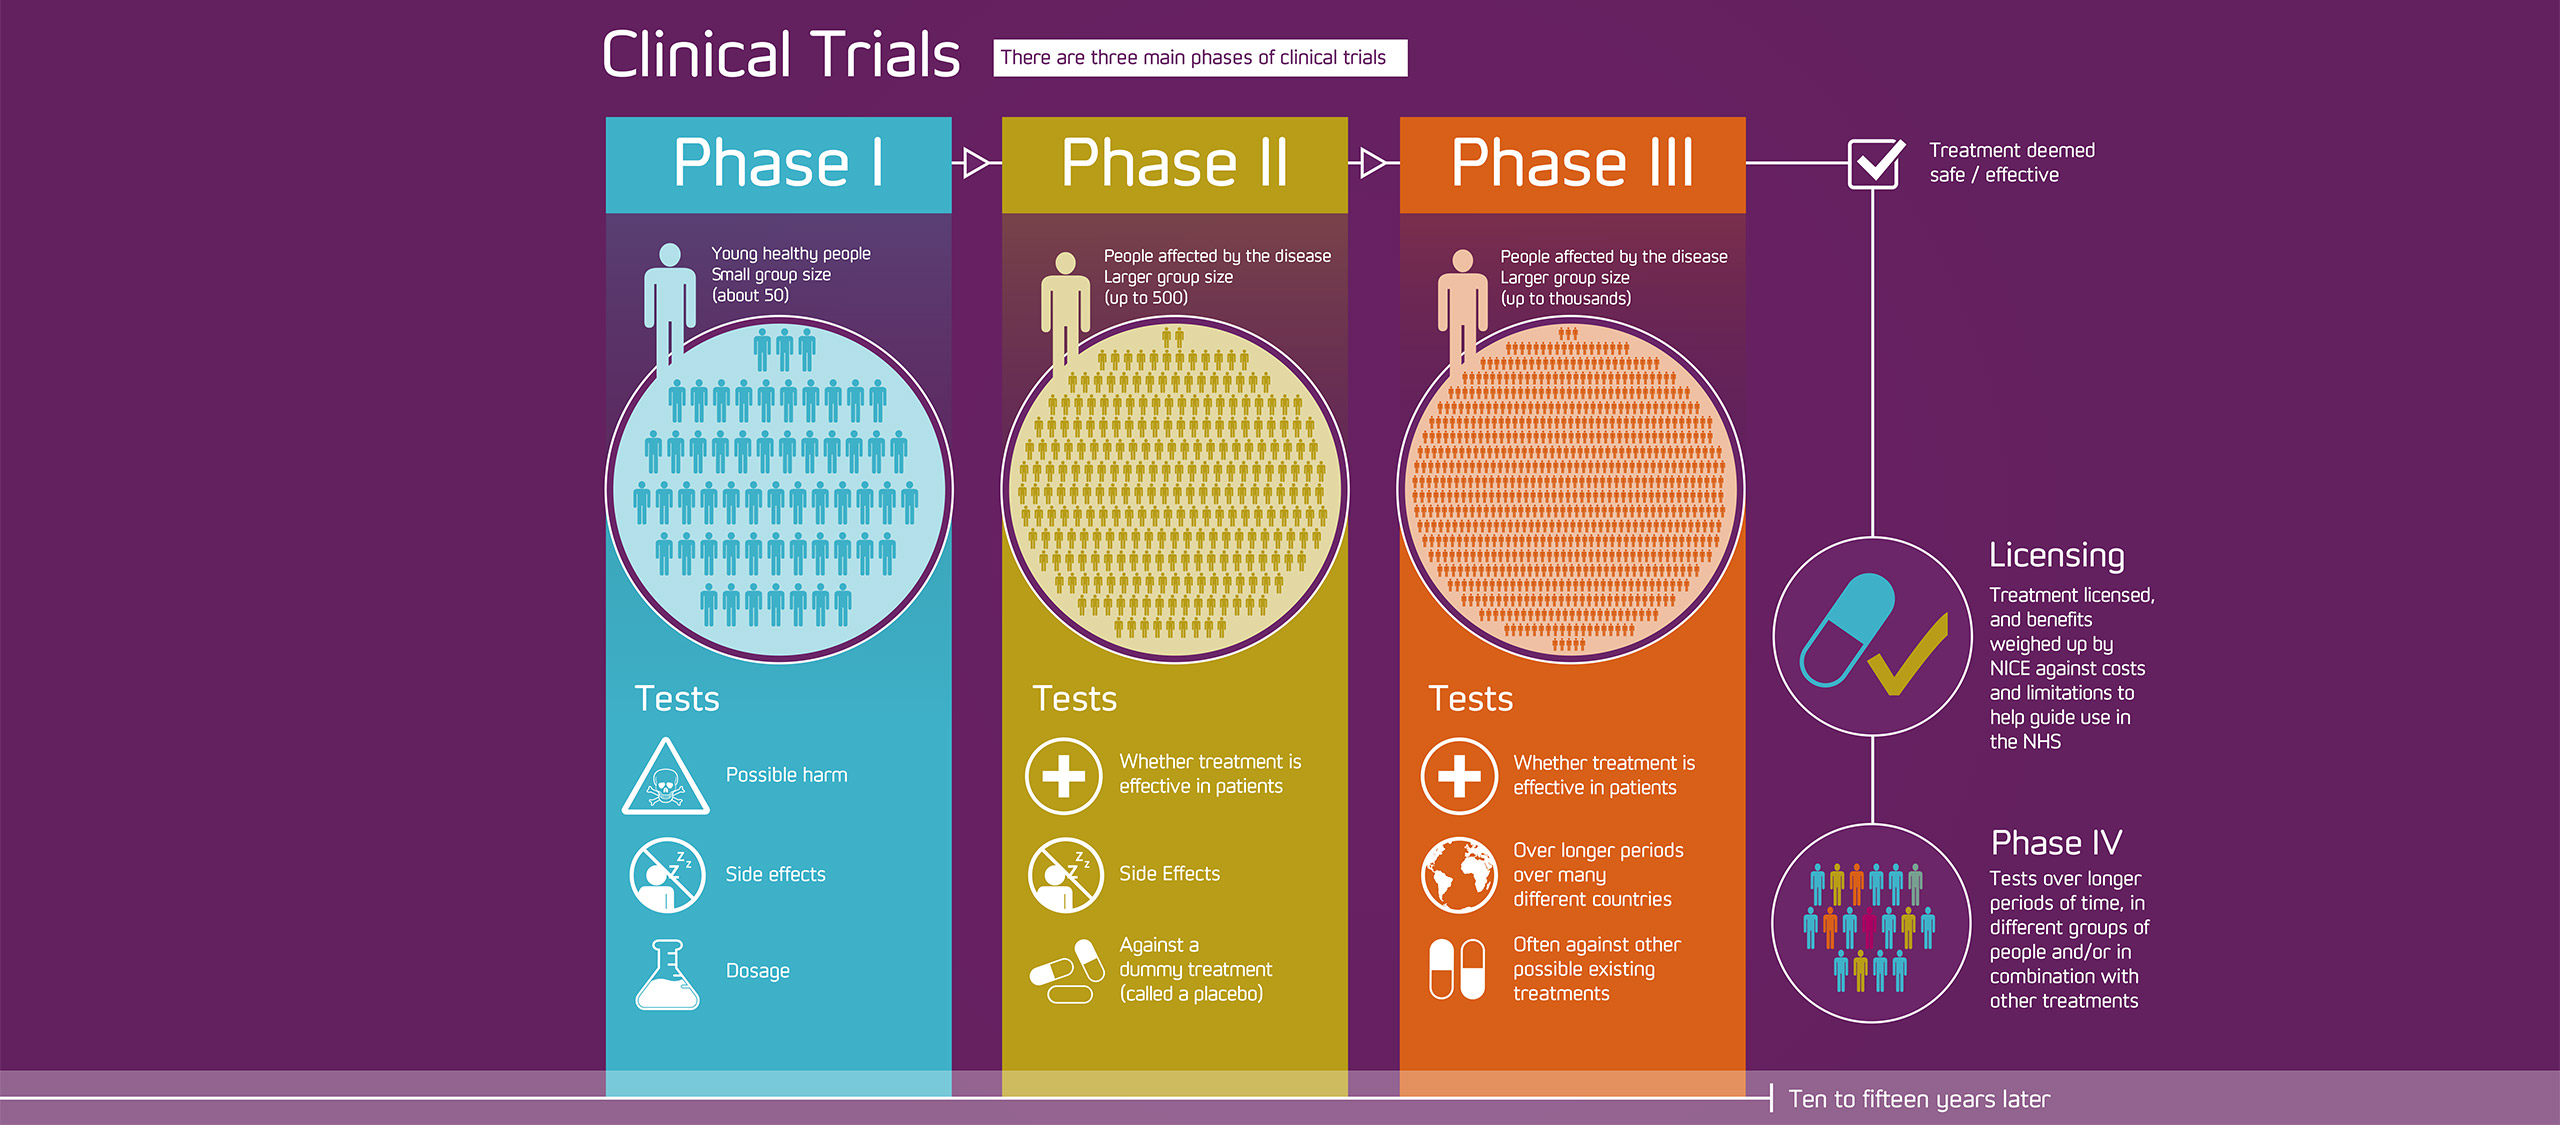 alz_clinical-trials_poster_2.7b